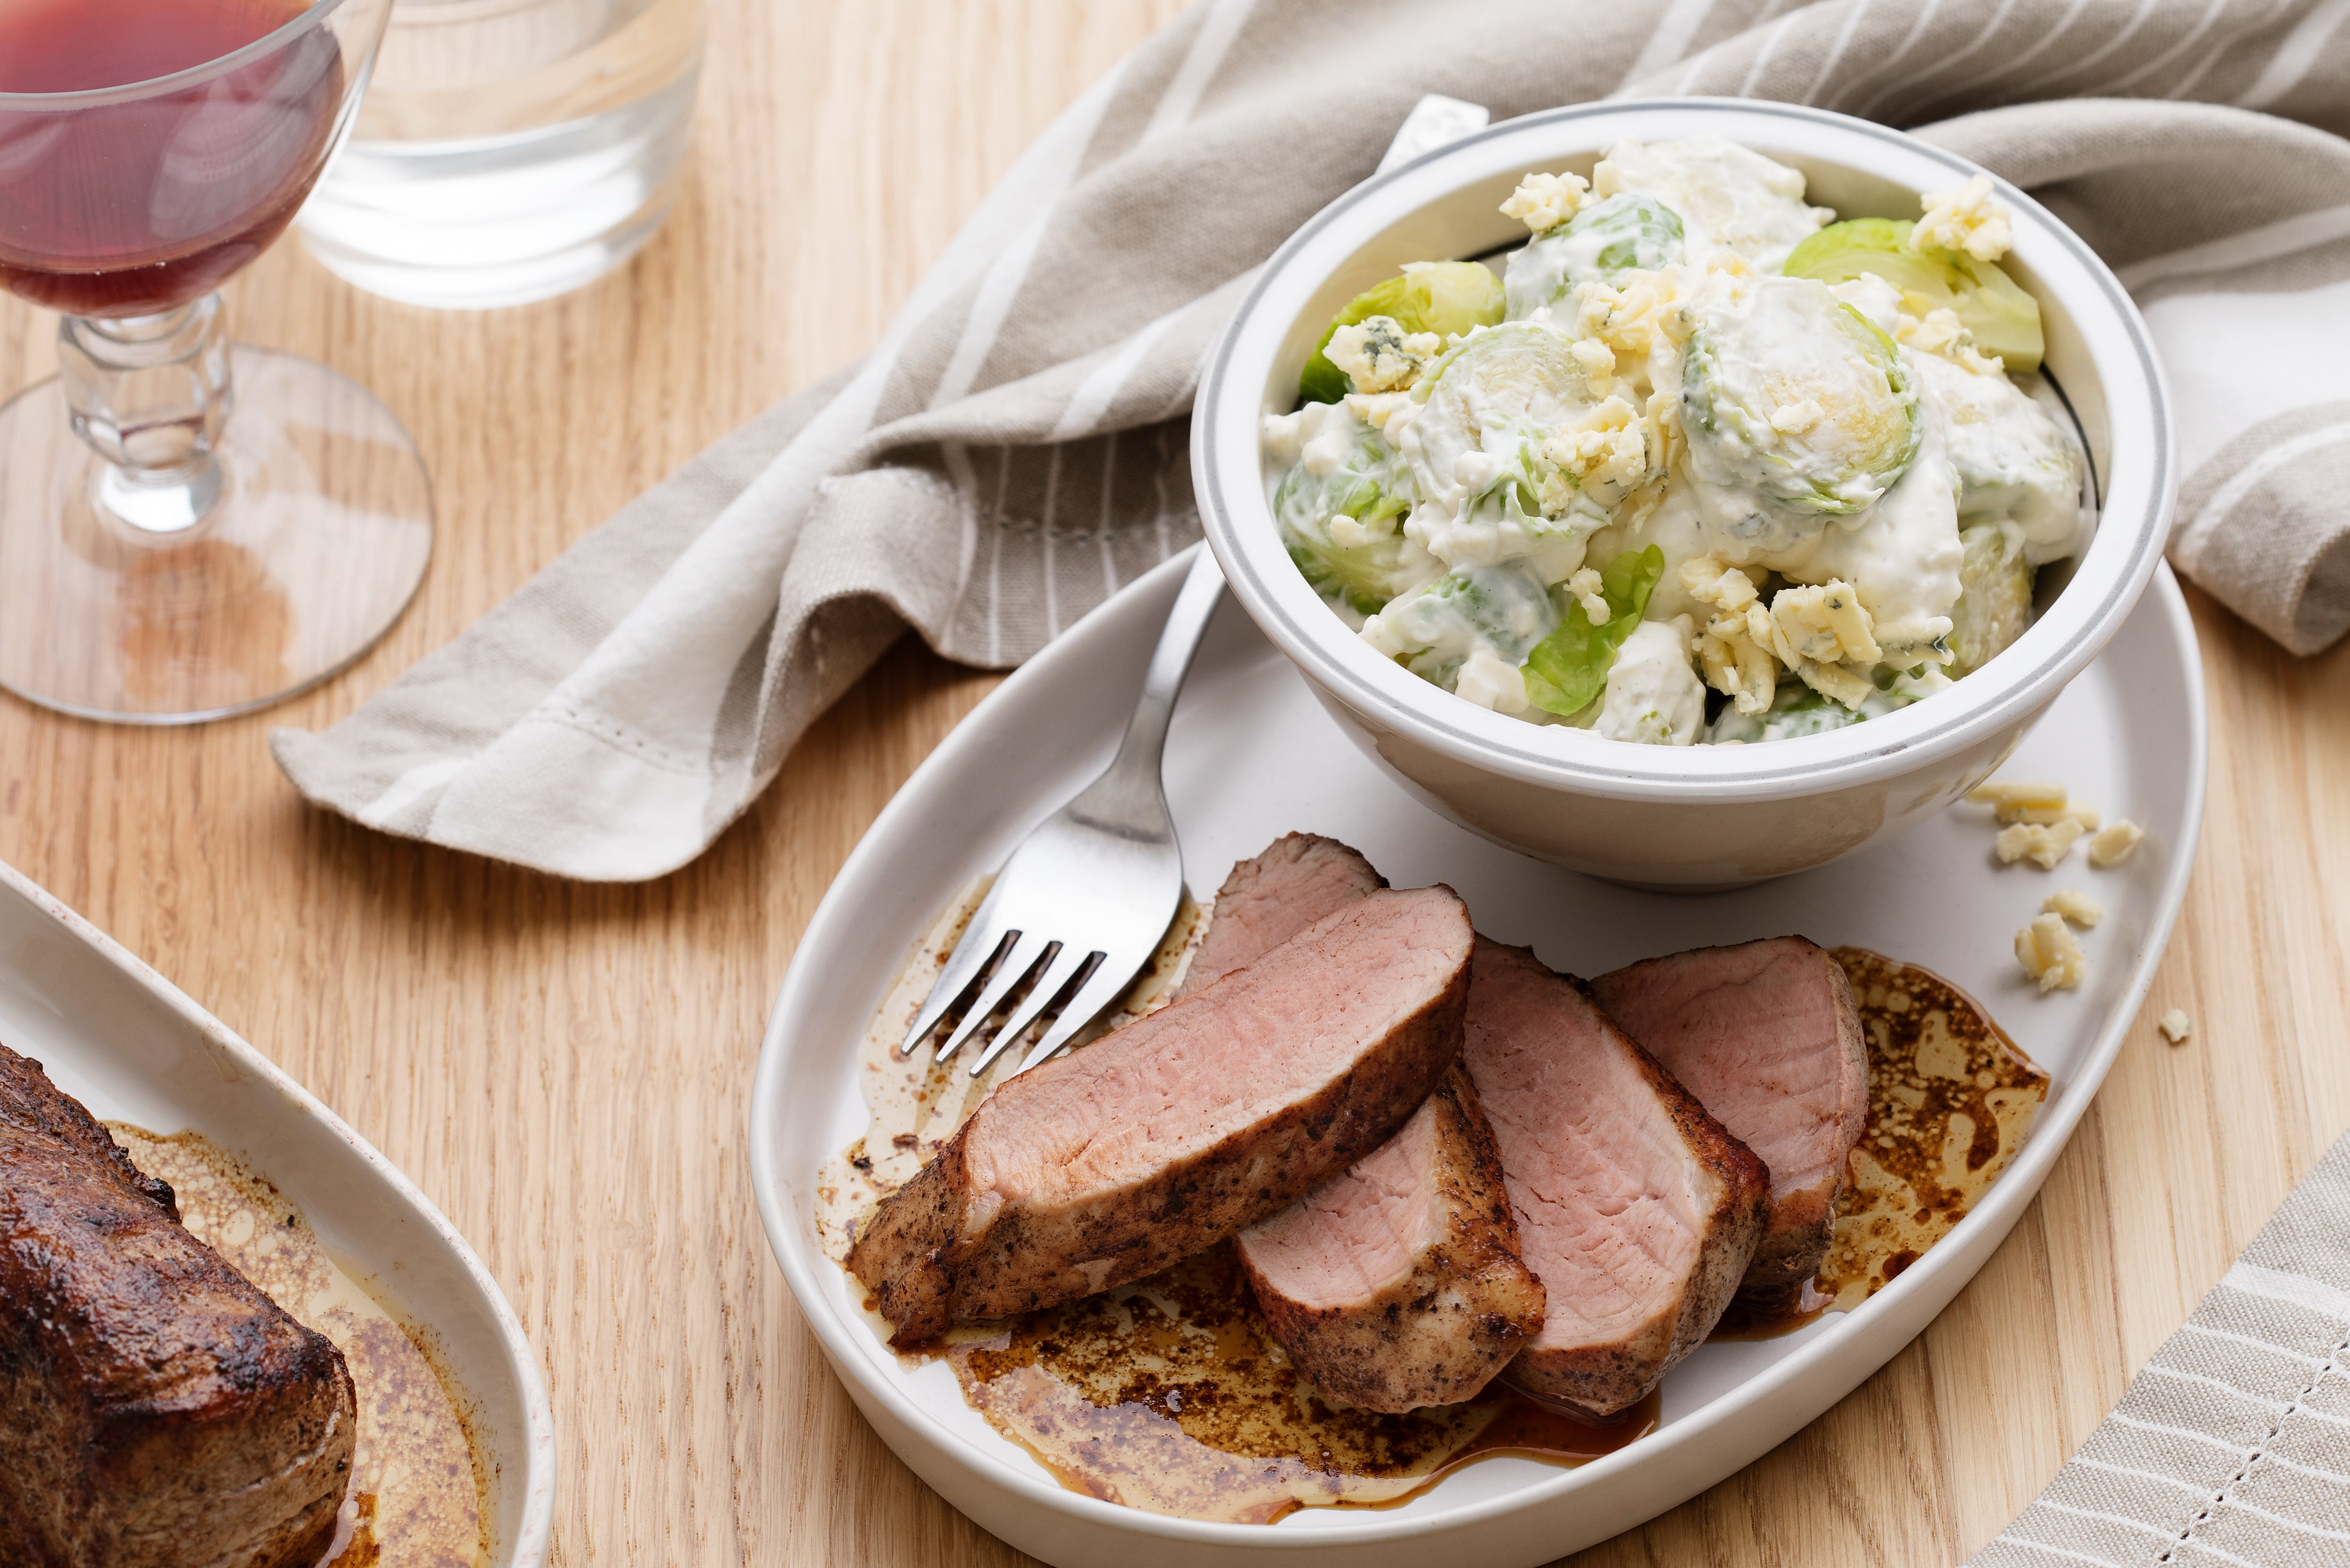 Pork loin roast with blue cheese sprouts